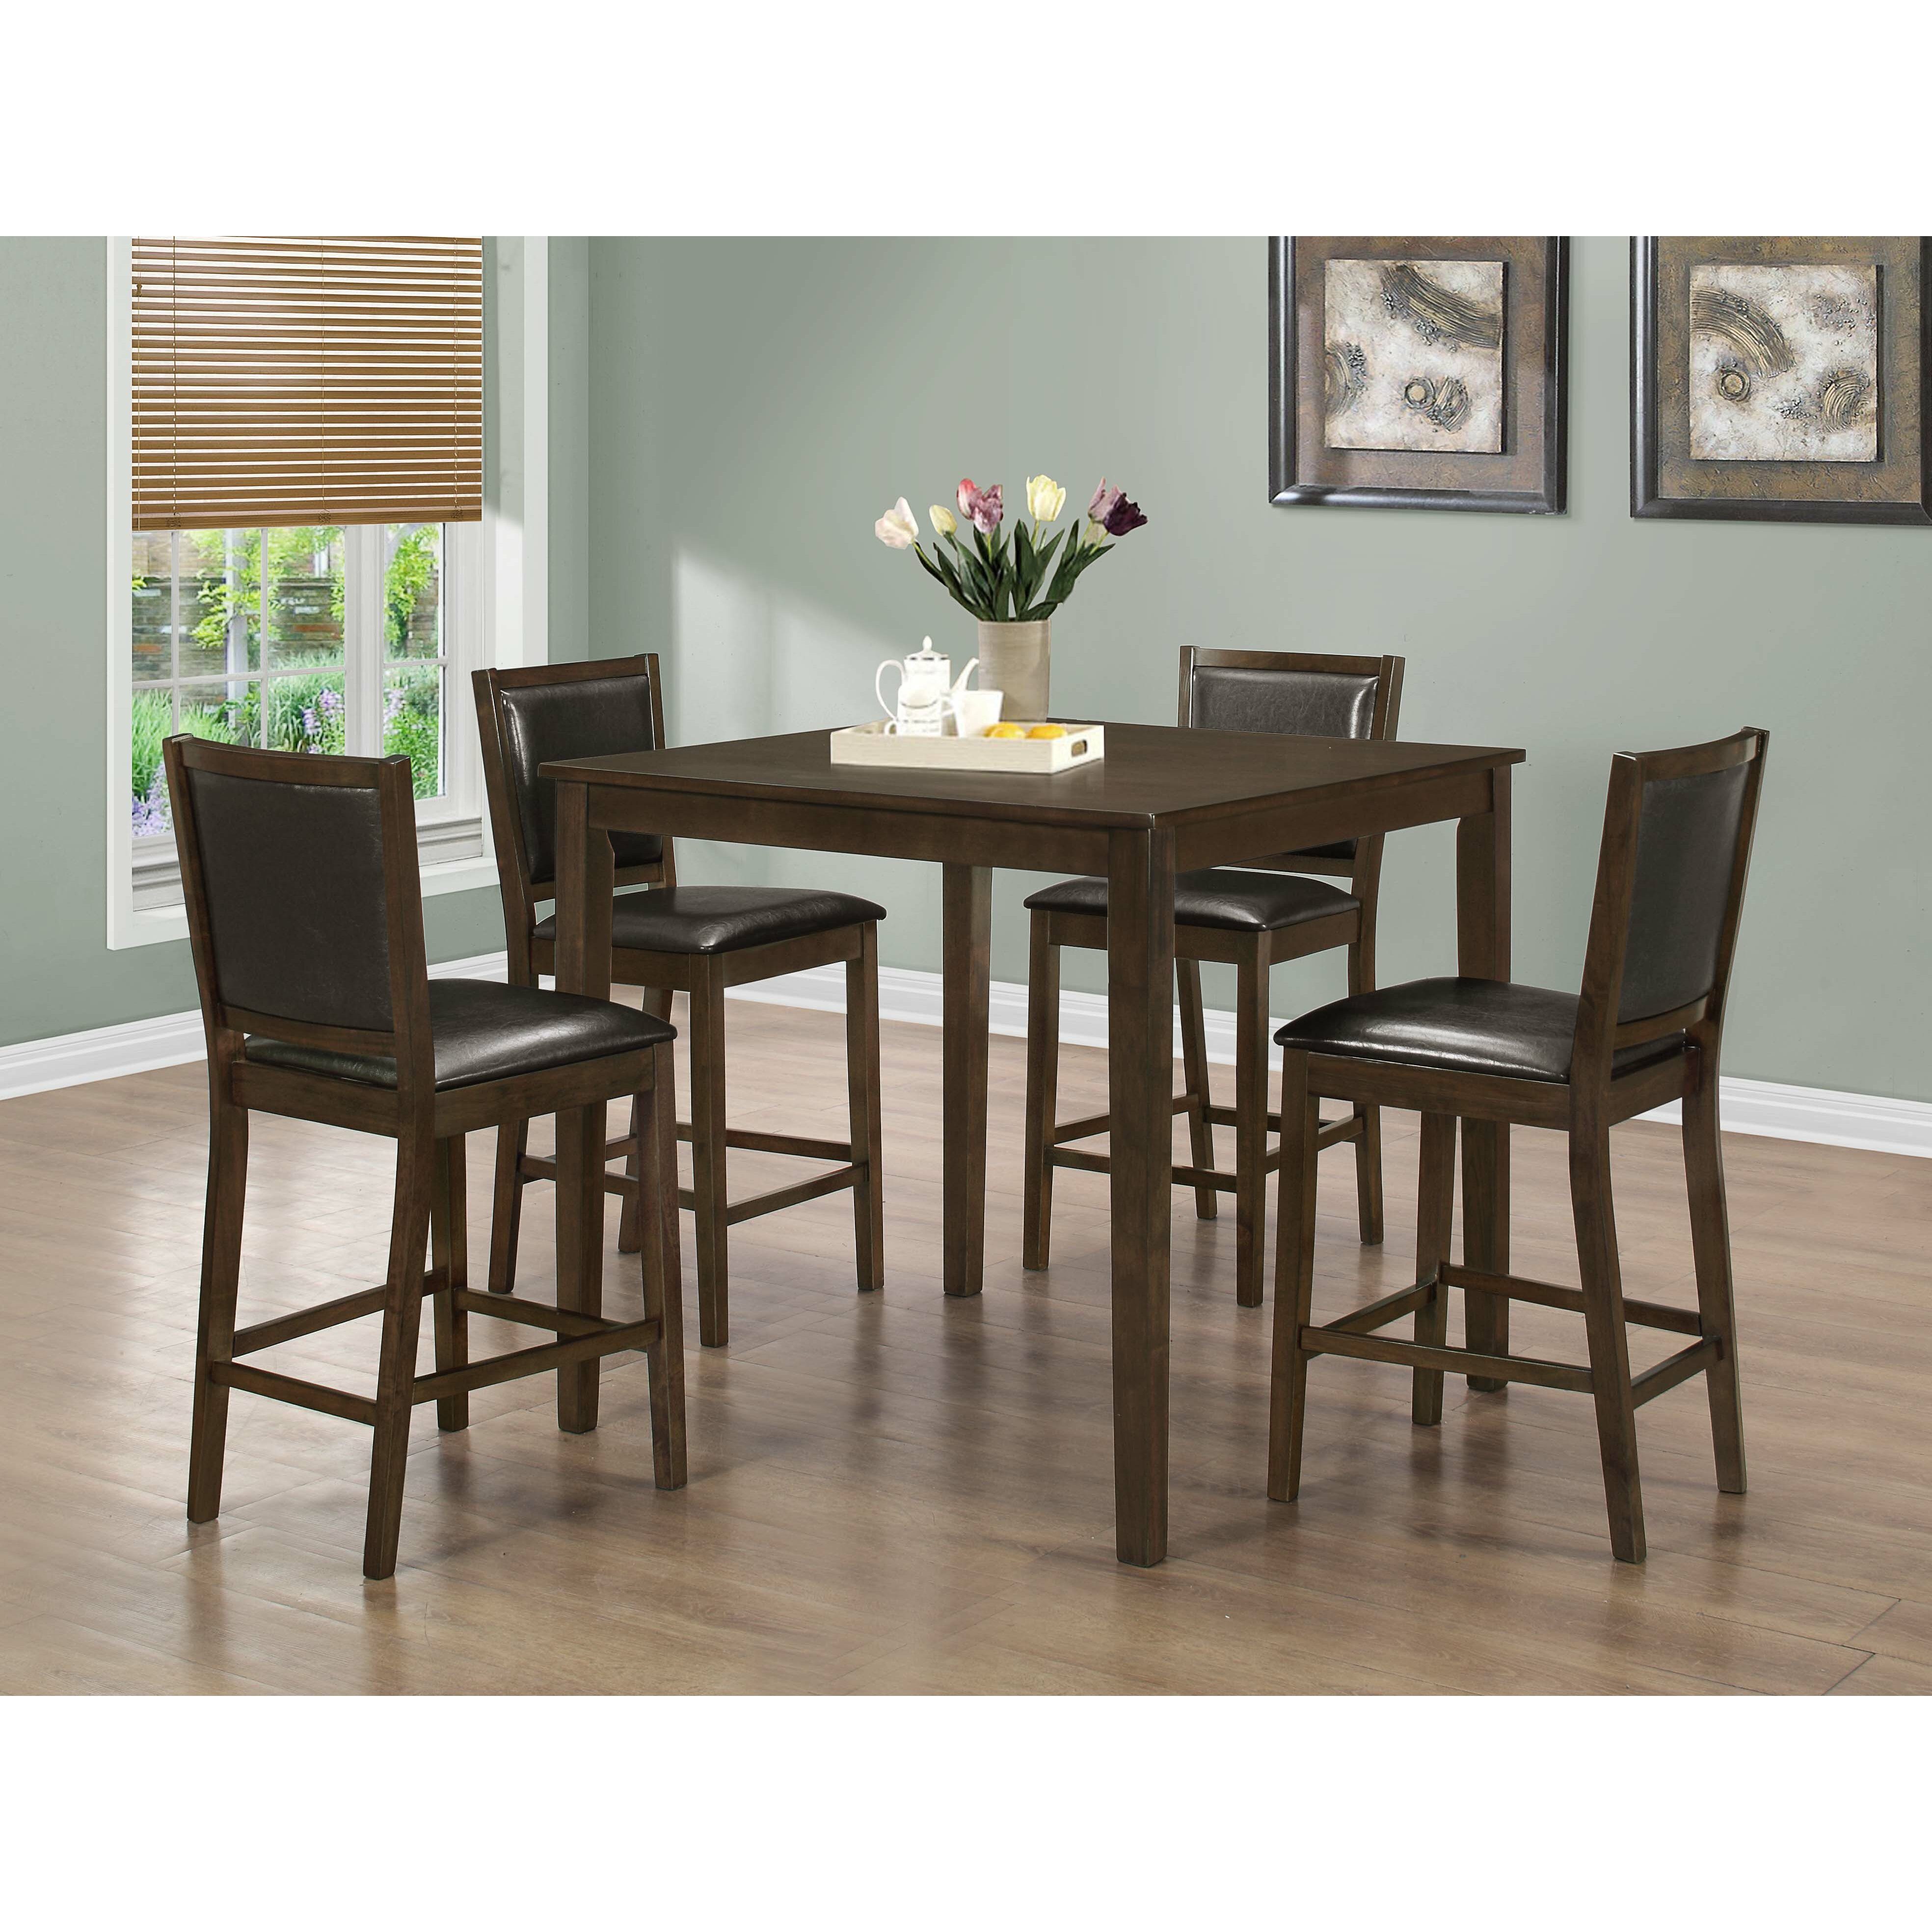 Counter Height Dining Sets 5 Piece : Monarch Specialties Inc. 5 Piece Counter Height Dining Set